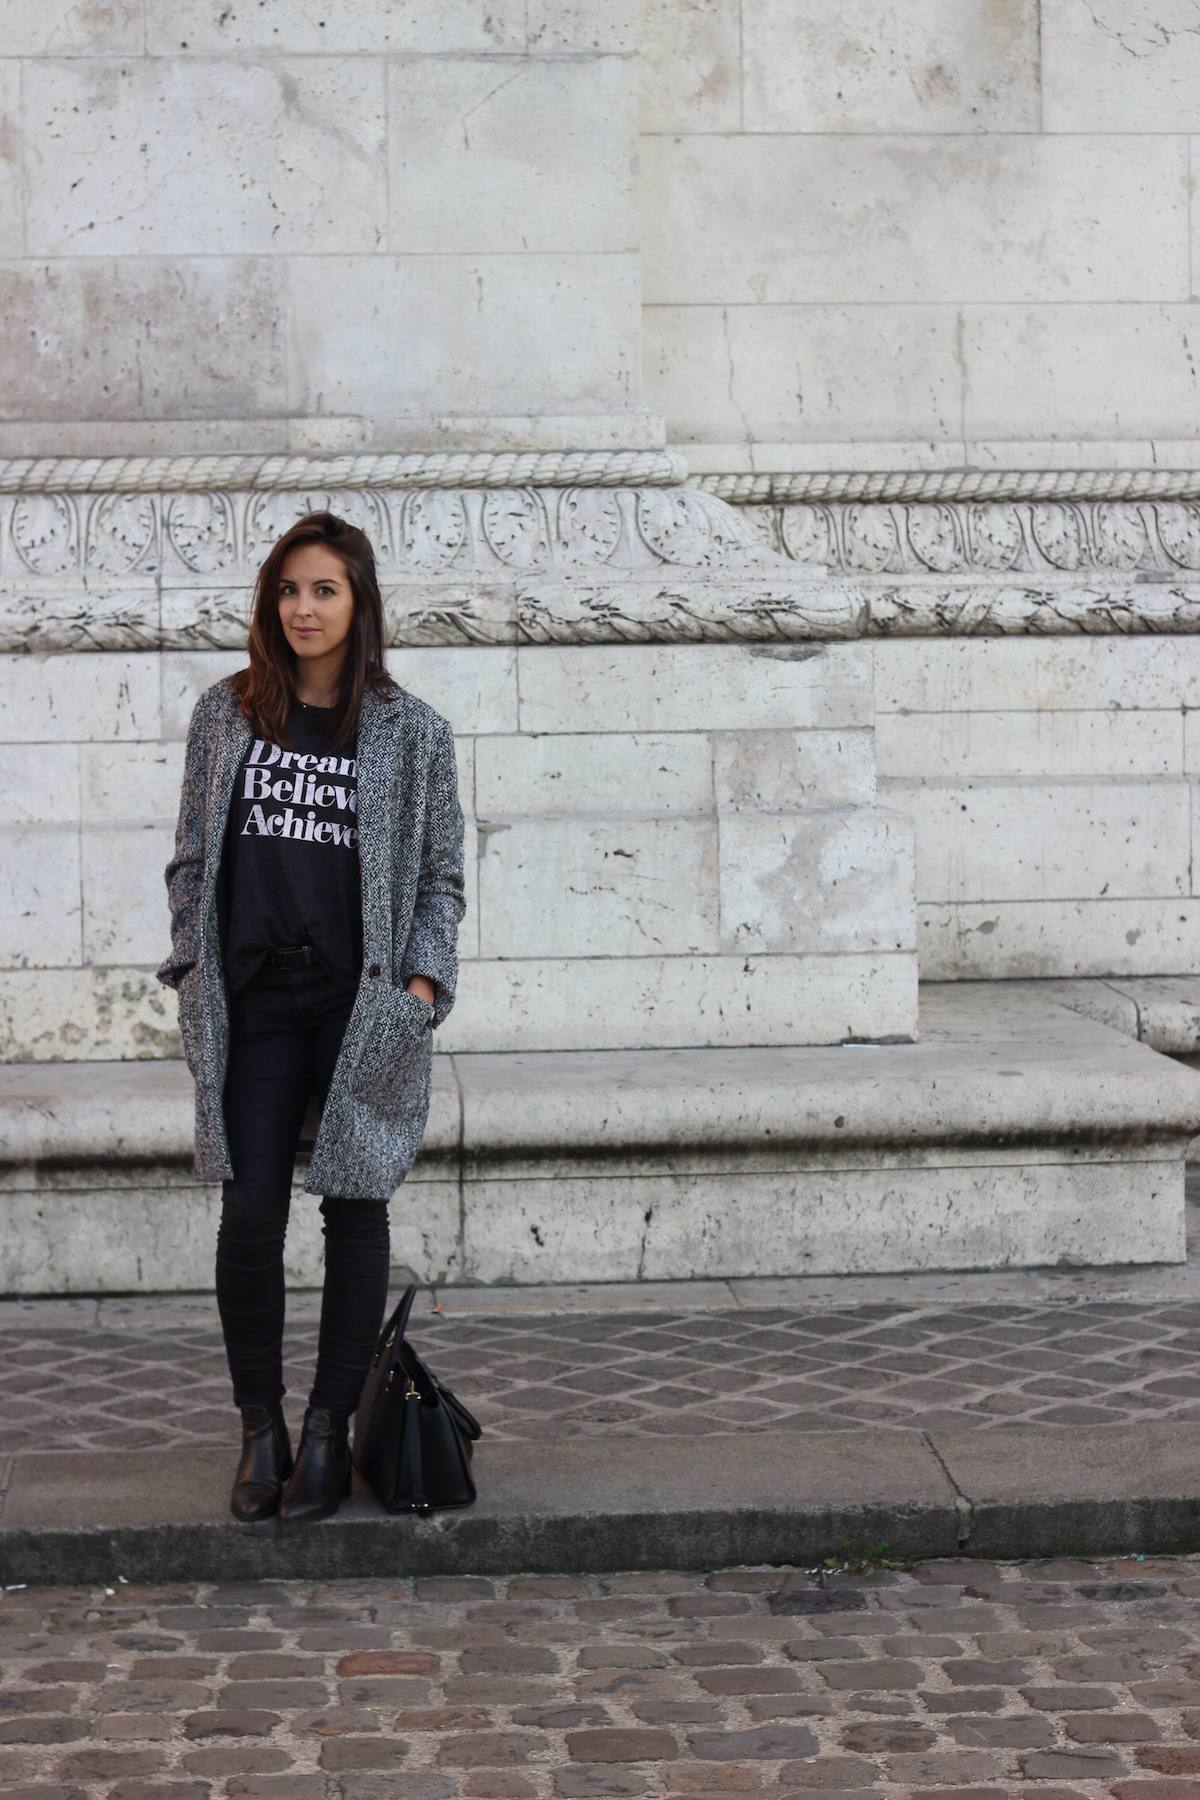 Paris - Dream Believe Achieve - Blog Mode Nolwenn C 2